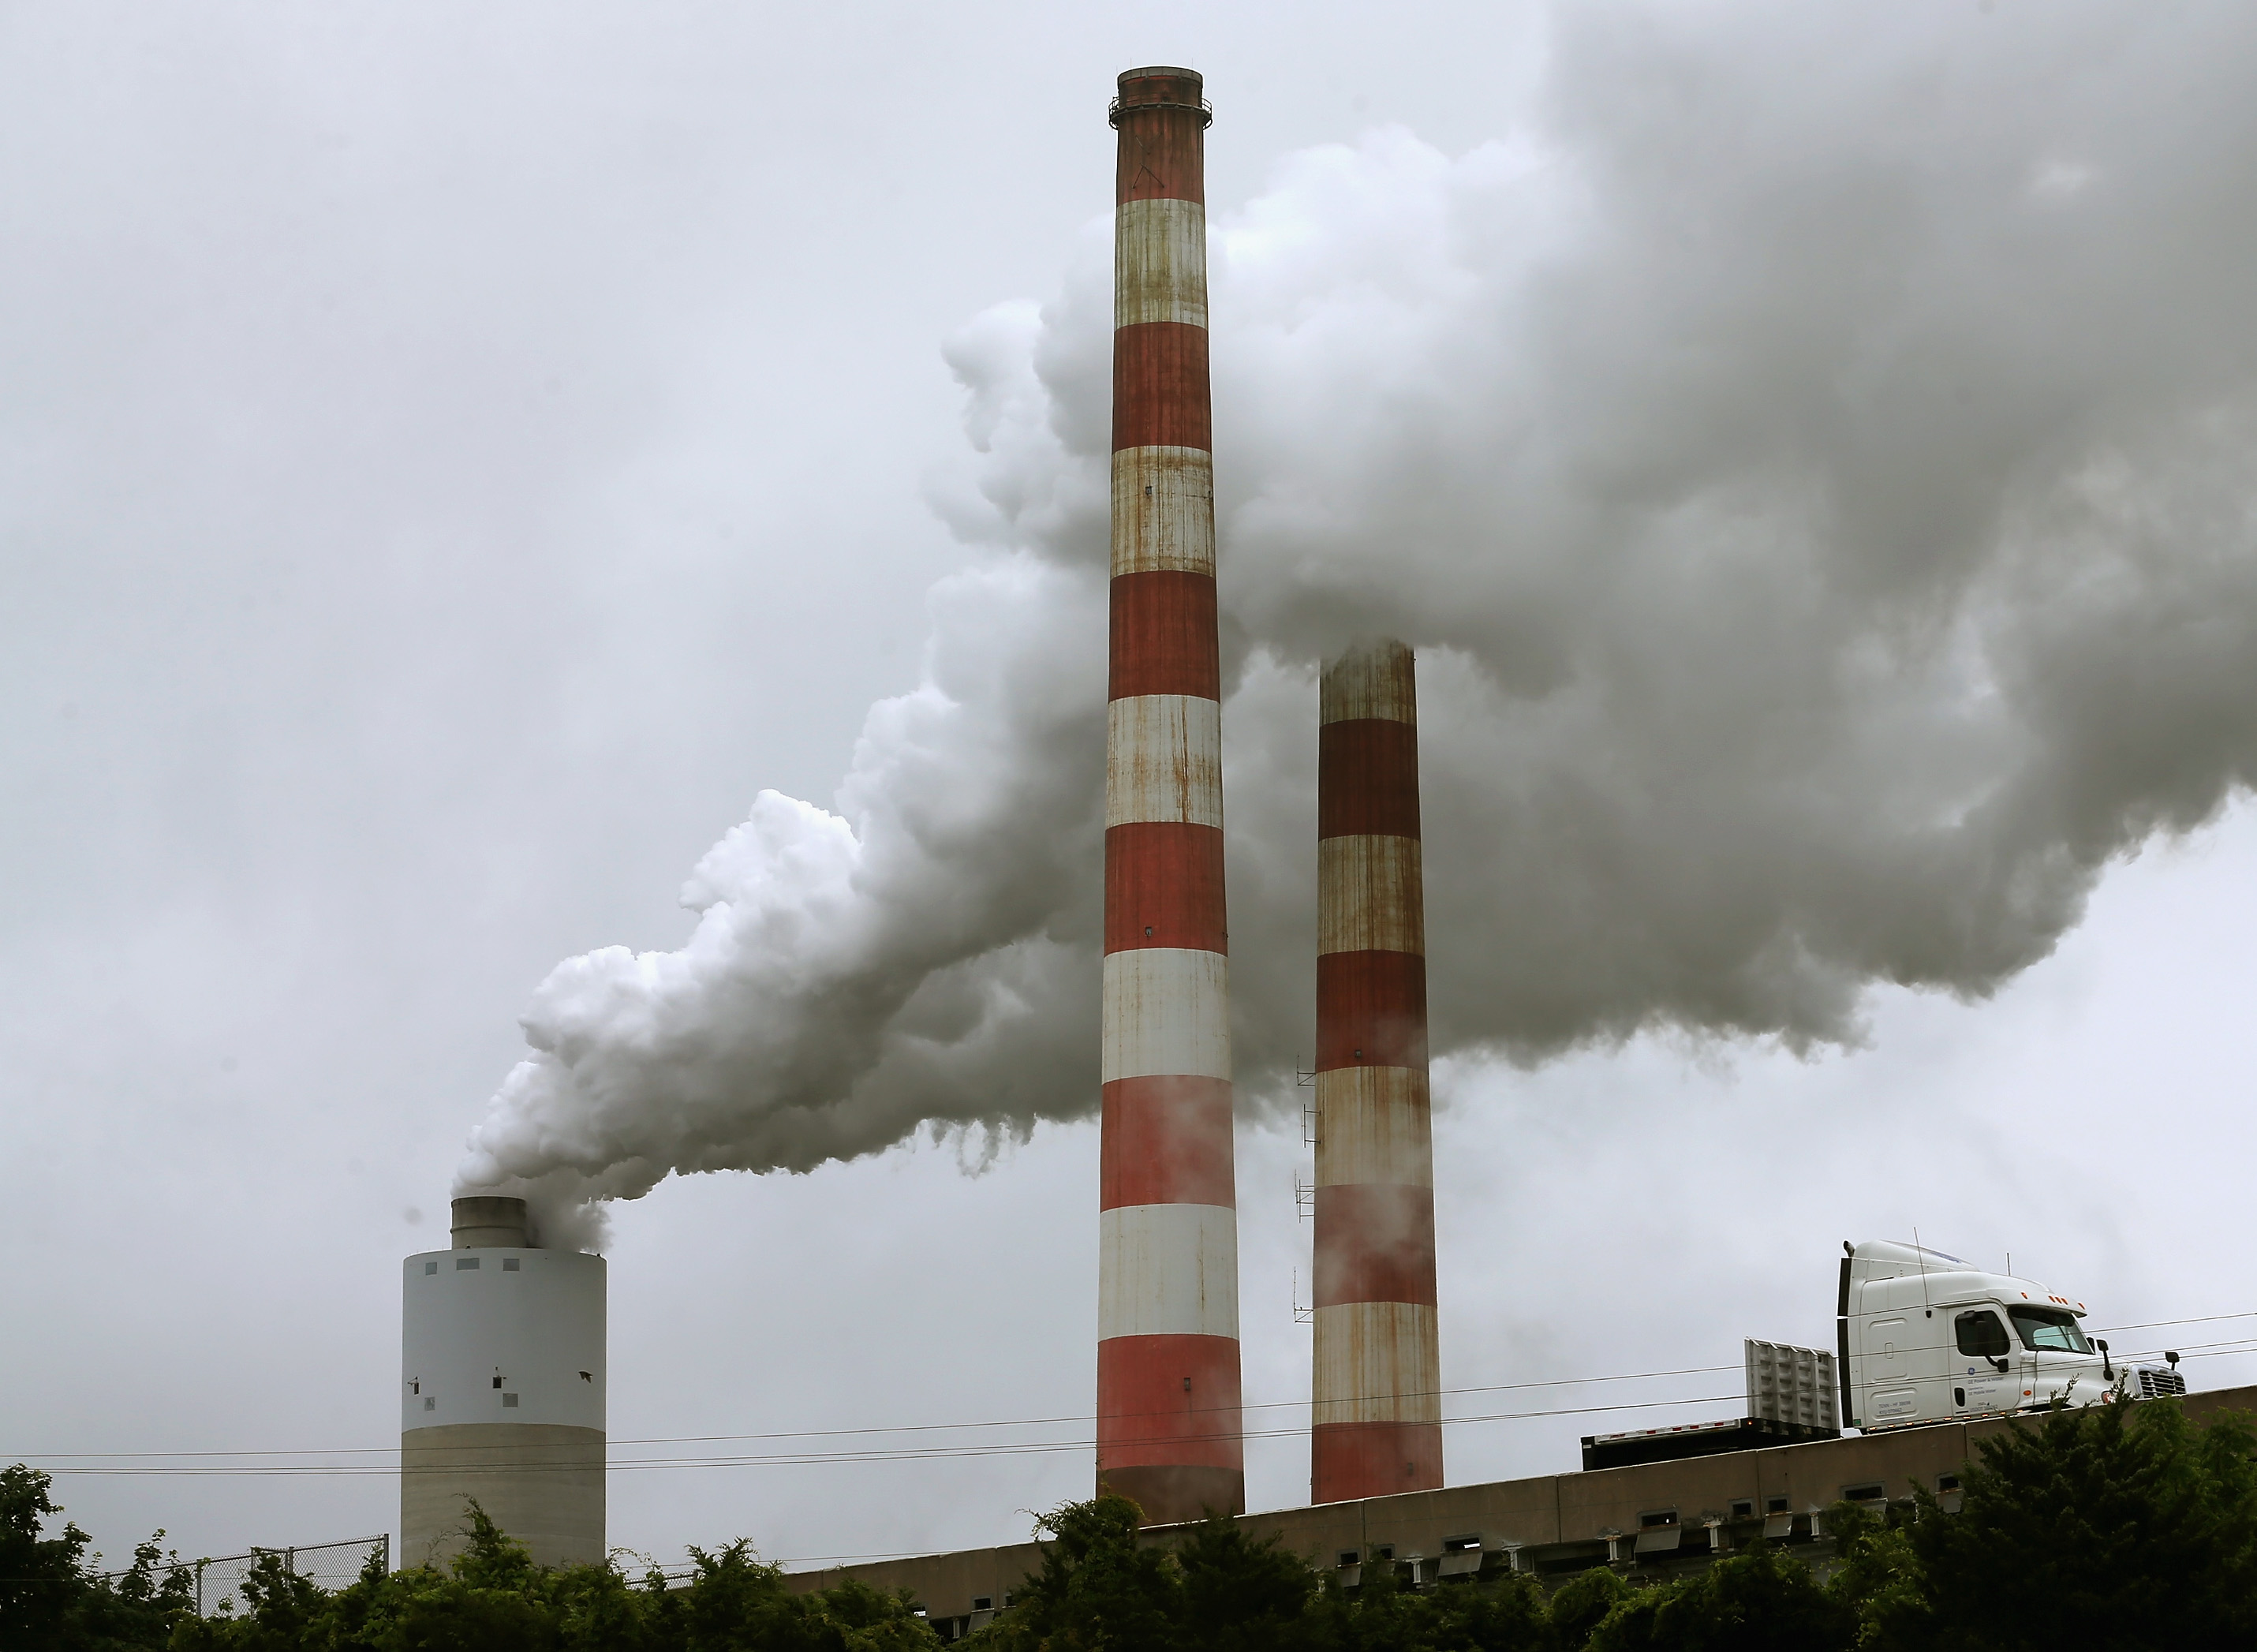 Energy-related CO2 emissions stabilized in 2014 – so what?